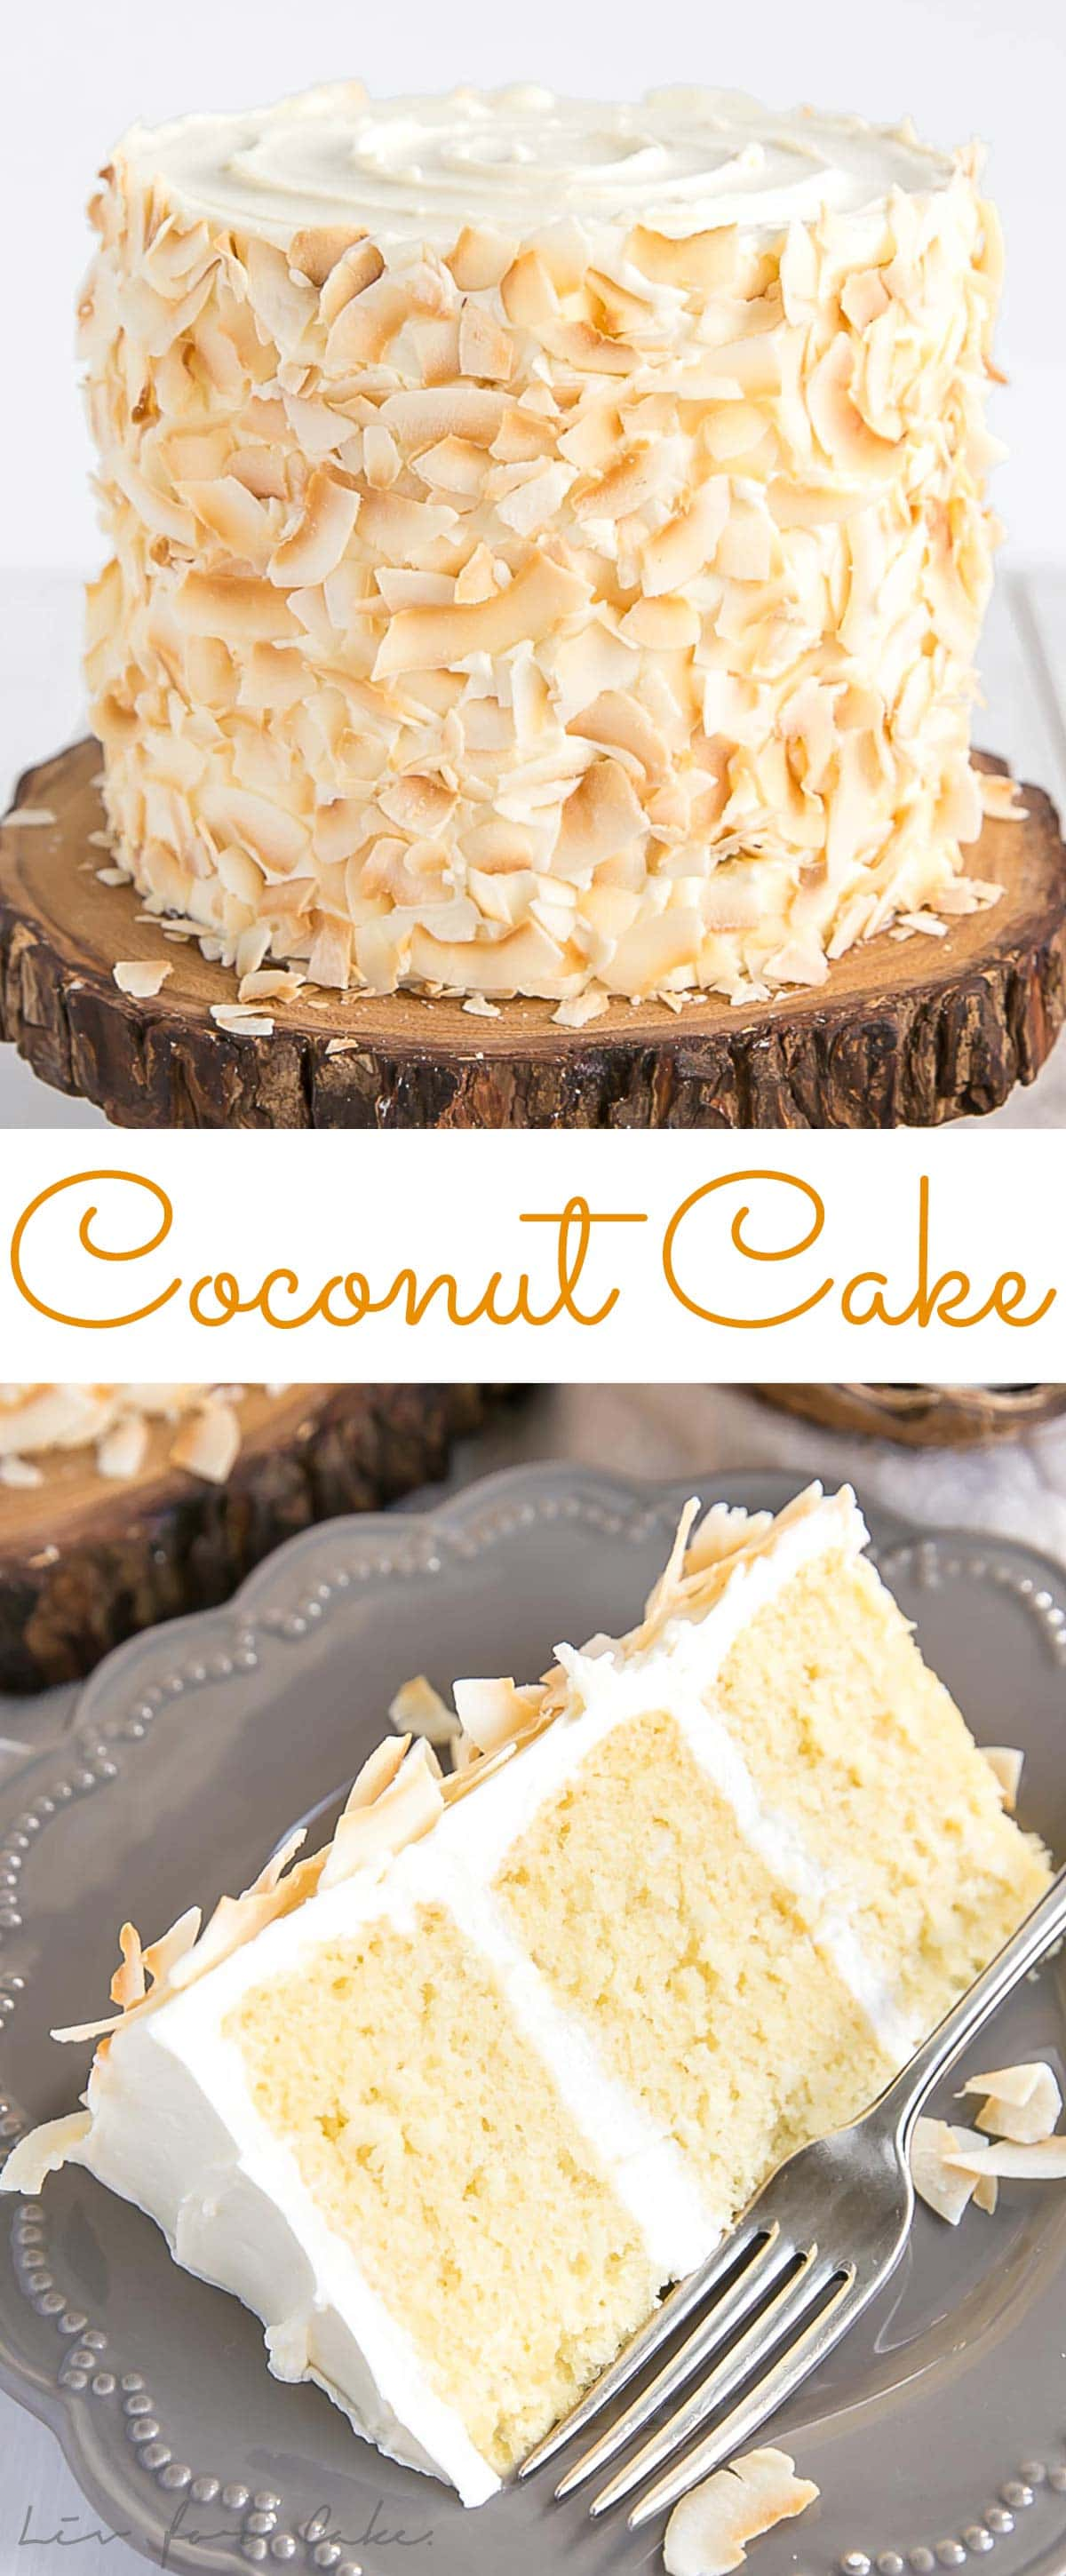 Coconut cake recipe made with coconut milk, coconut milk powder, and toasted coconut flakes.